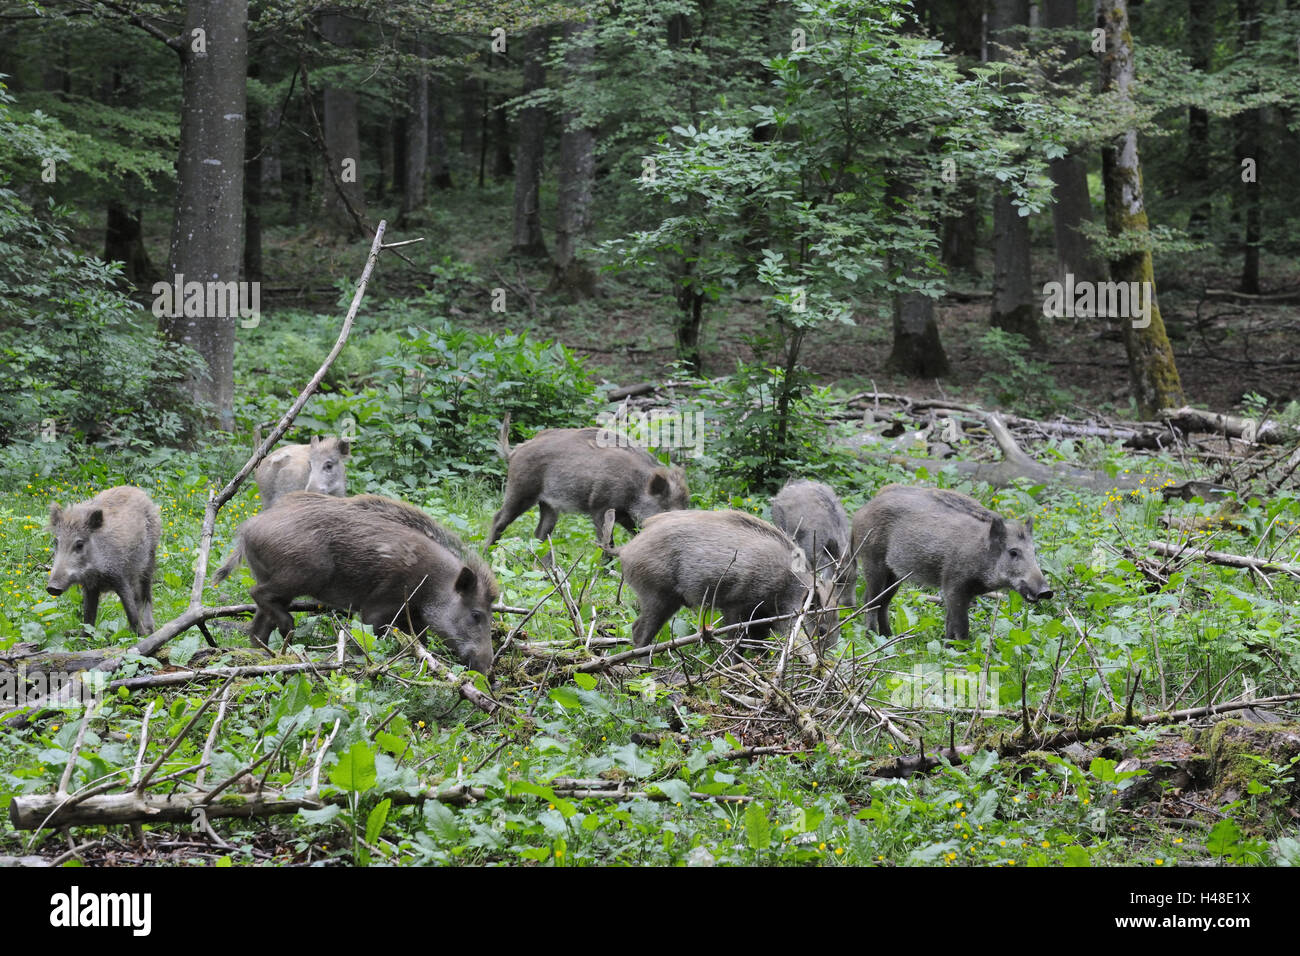 boars, Sus scrofa, search for food, - Stock Image